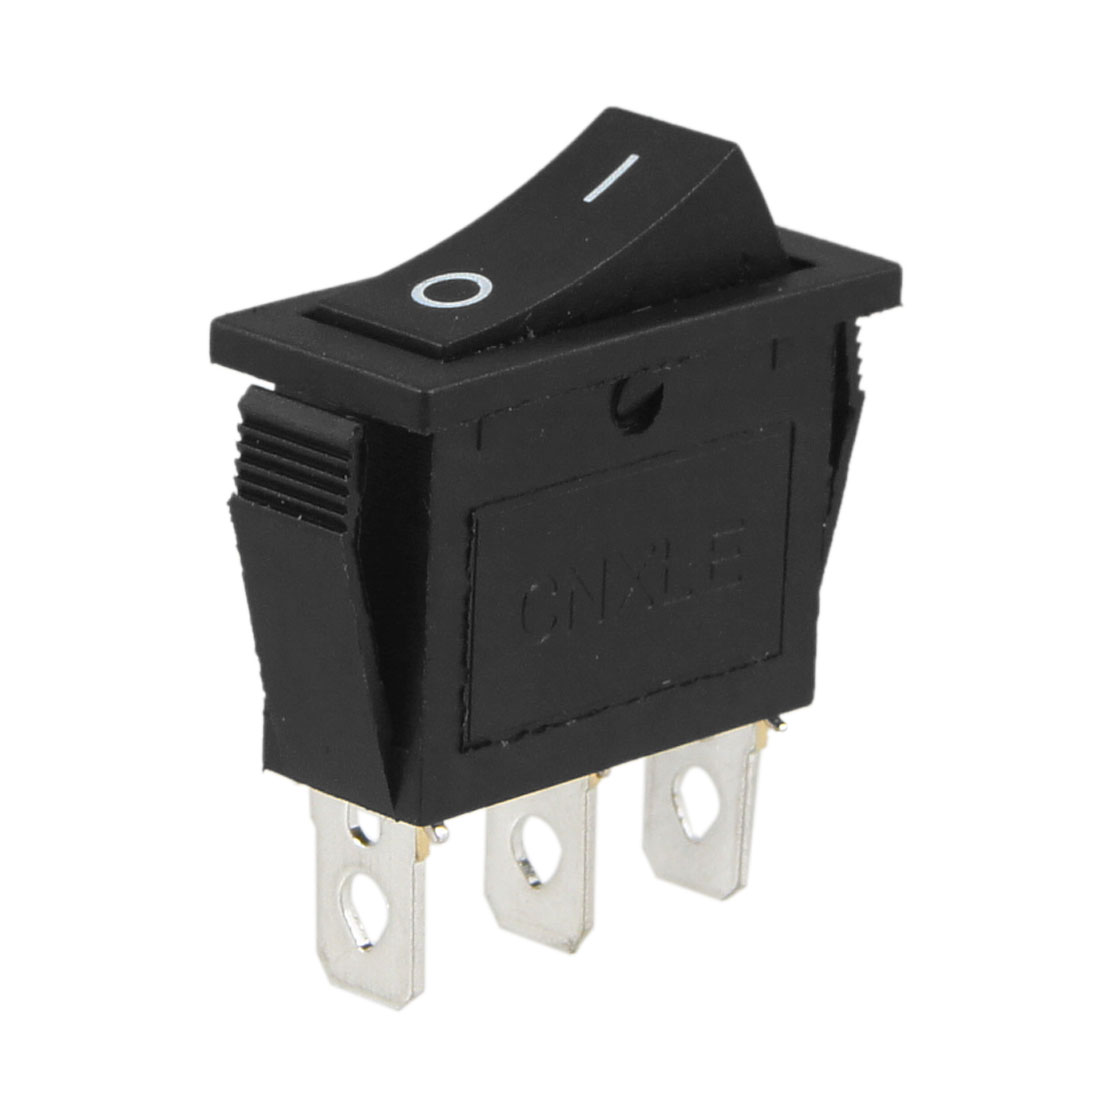 AC 250V 15A Black Plastic Housing 3 Pins ON OFF SPST Rocker Switch